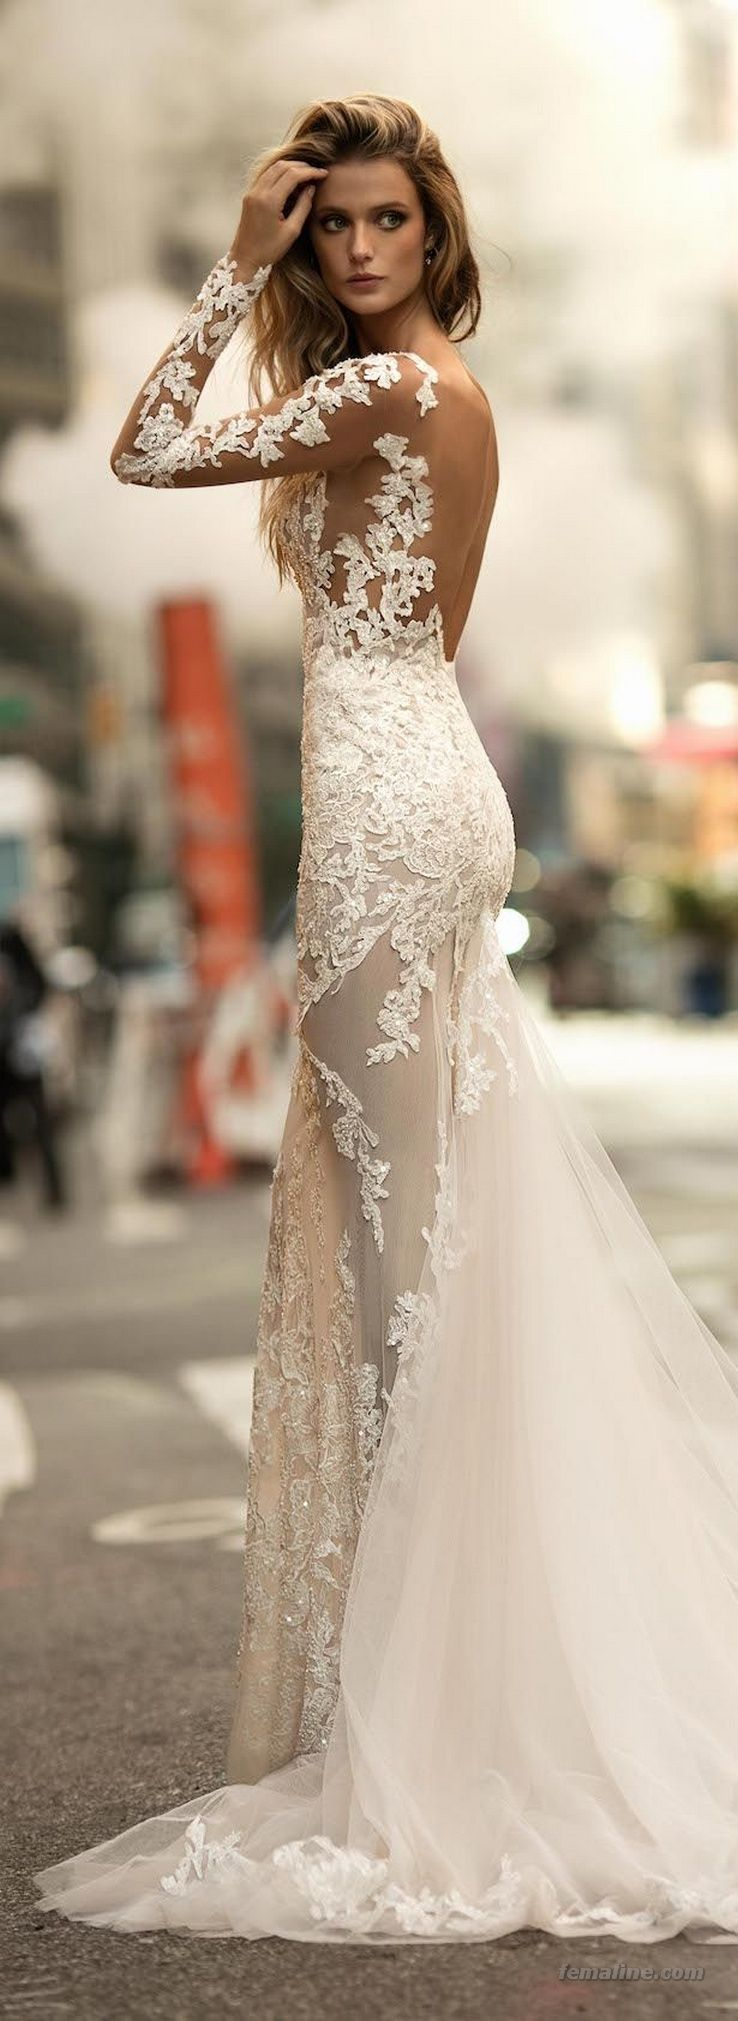 139 Ideas for Fall 2017 Wedding Dress Trends | Ich freue mich auf ...